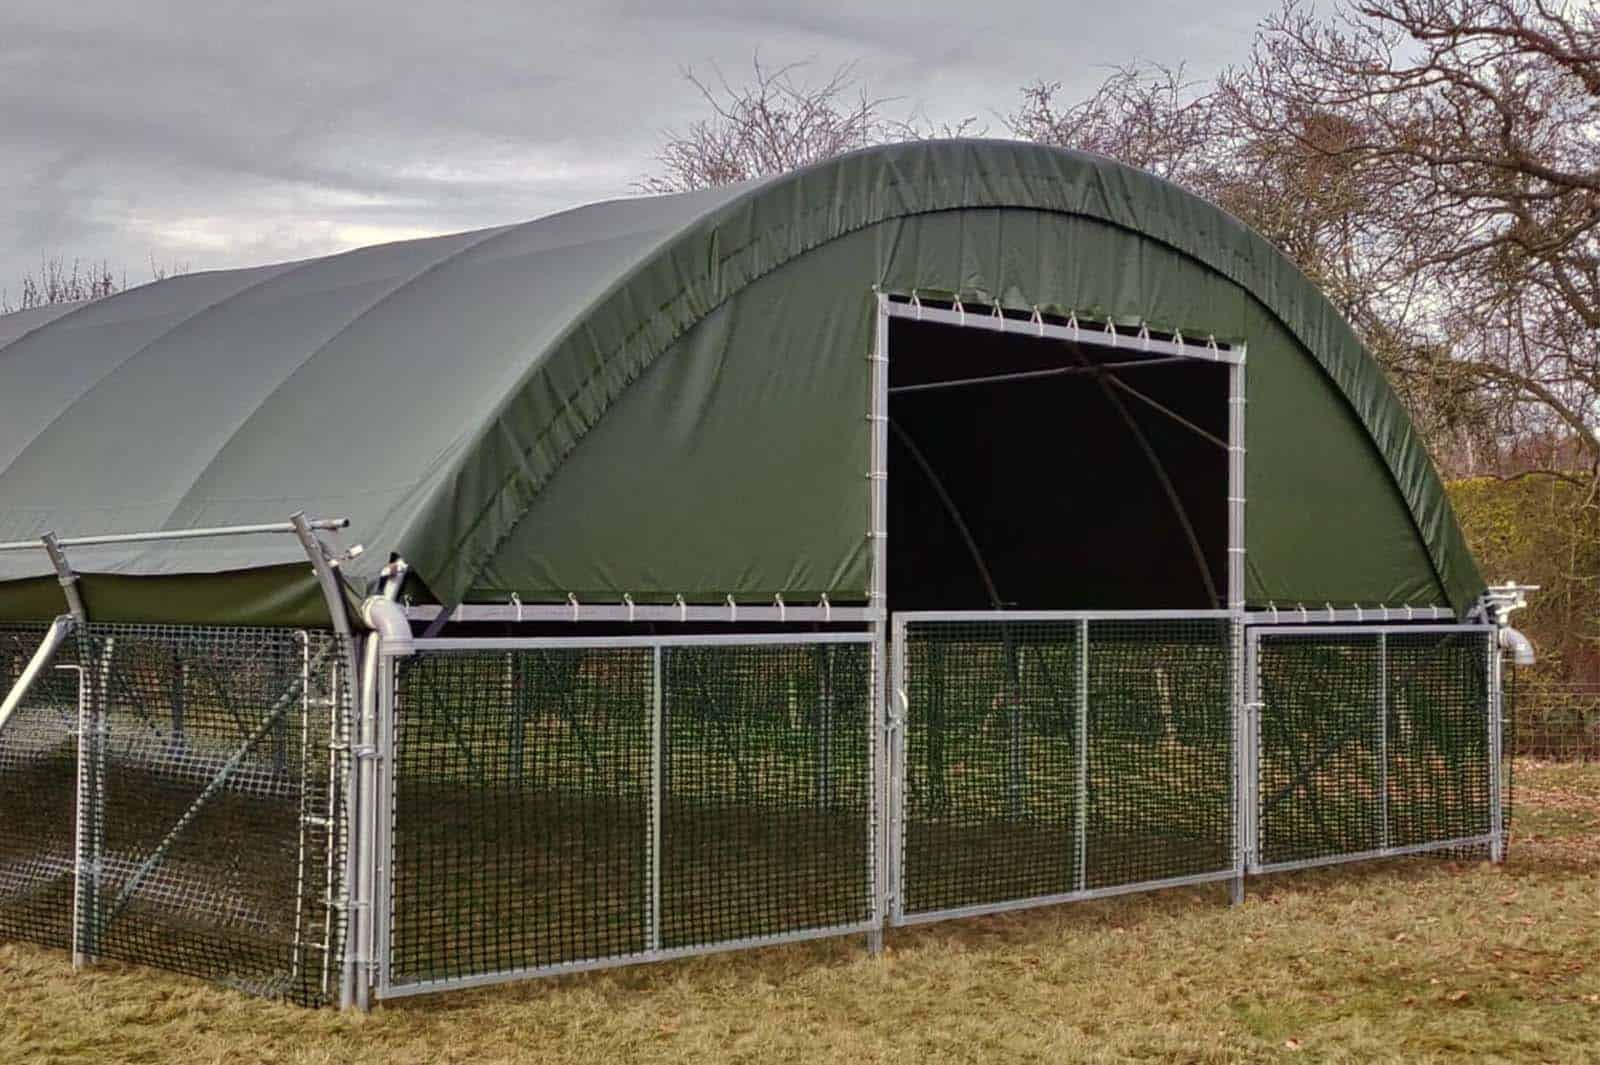 Front view of the Livestock Pop-Up Building installed on a sheep farm in Alton, Hampshire, UK by McGregor Polytunnels